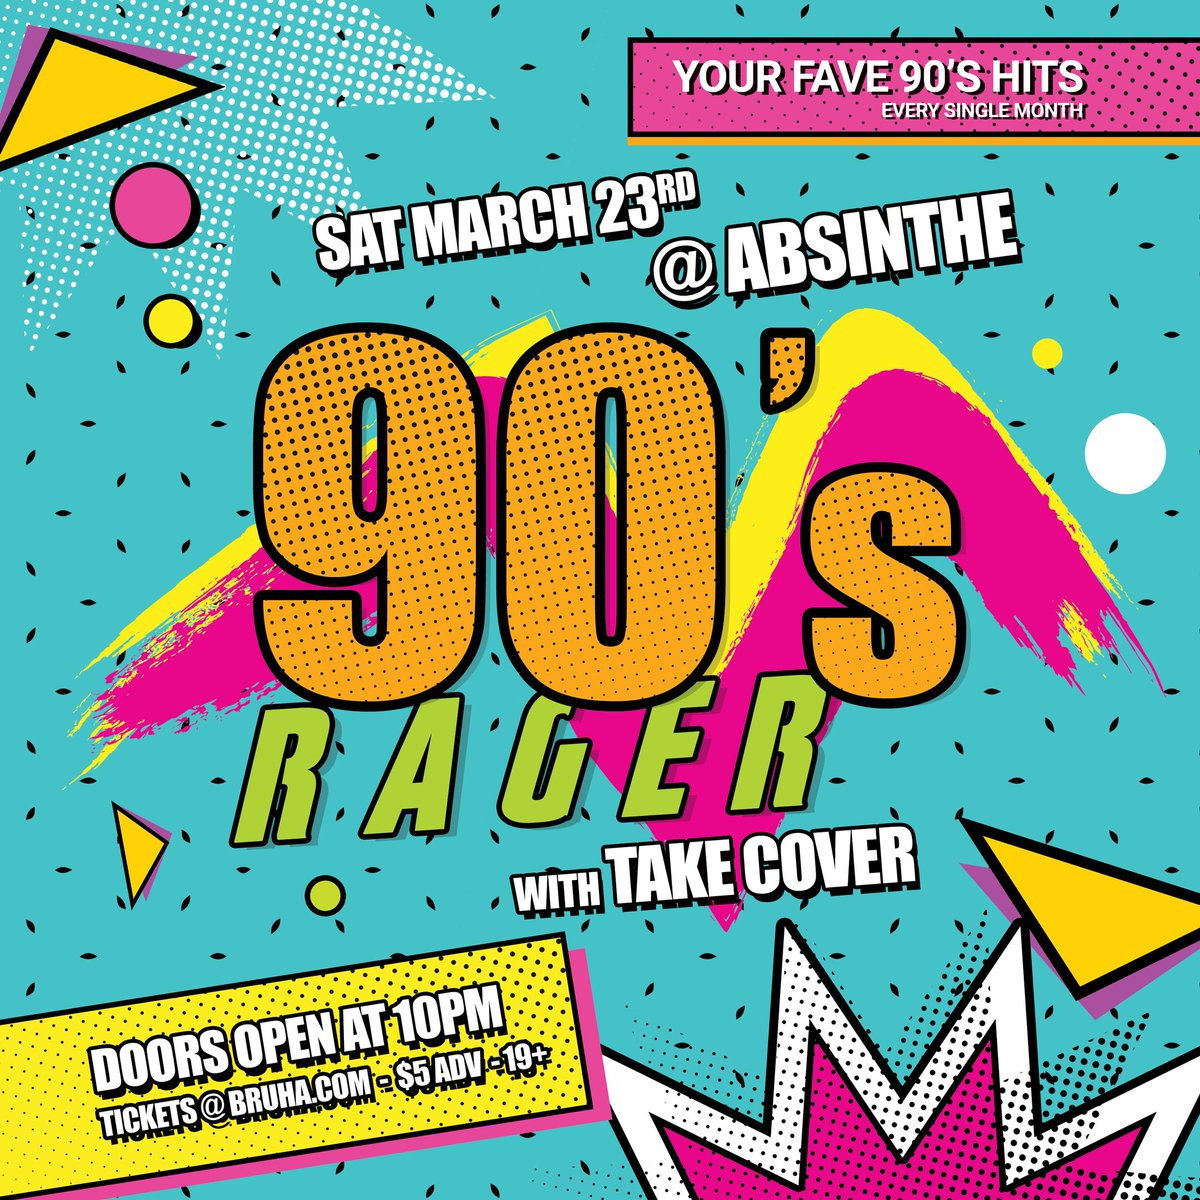 MARCH 23RD! Grab your Gameboy and Pogs and prepare for our monthly 90'S RAGER with @takecoverlive playing your fave 90's hits all night. Plus DJ PARTY JESUS spinning the freshest tunes this side of Limewire. Cheap $5 tickets here: http://bit.ly/2HzXfmE